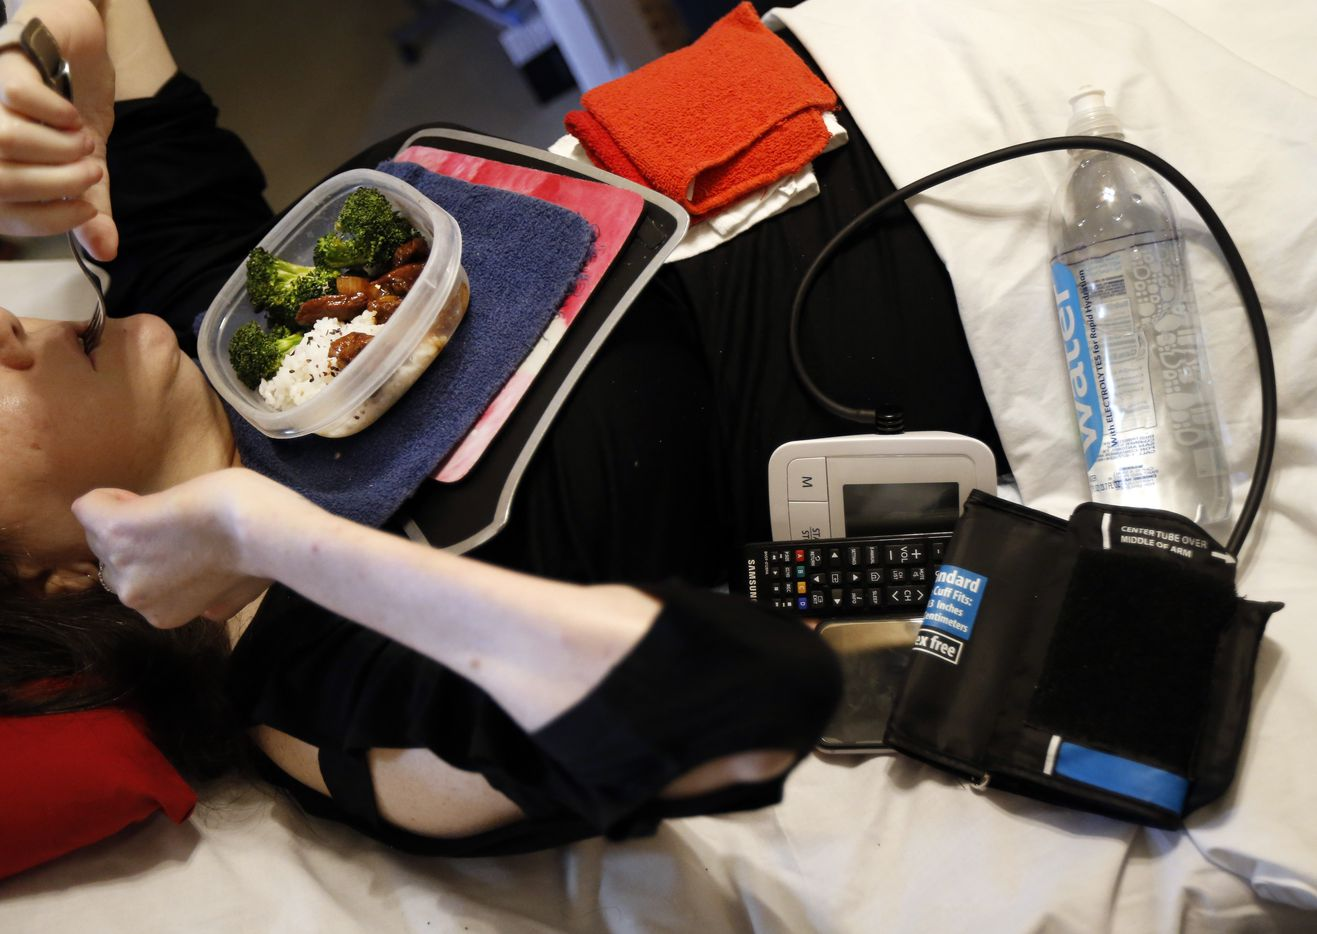 Since Powell can't get out of bed, she eats her meals there, while keeping her blood pressure machine, a bottle of water, phone and remote controls close by.